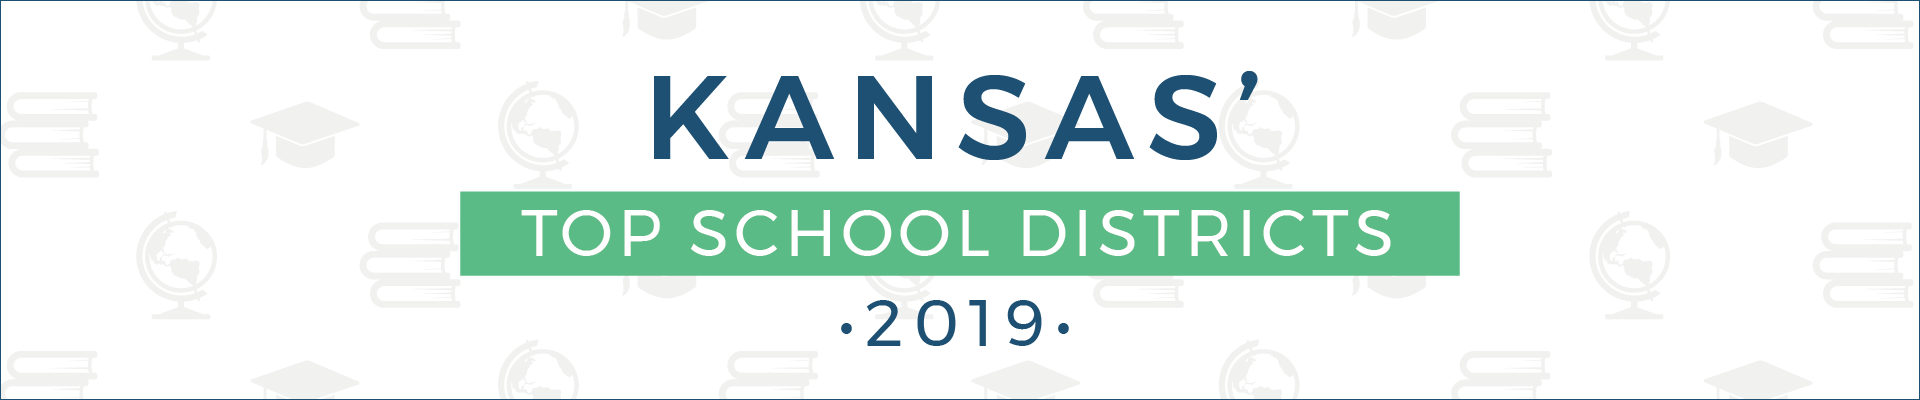 top school districts, 2019 - kansas - banner